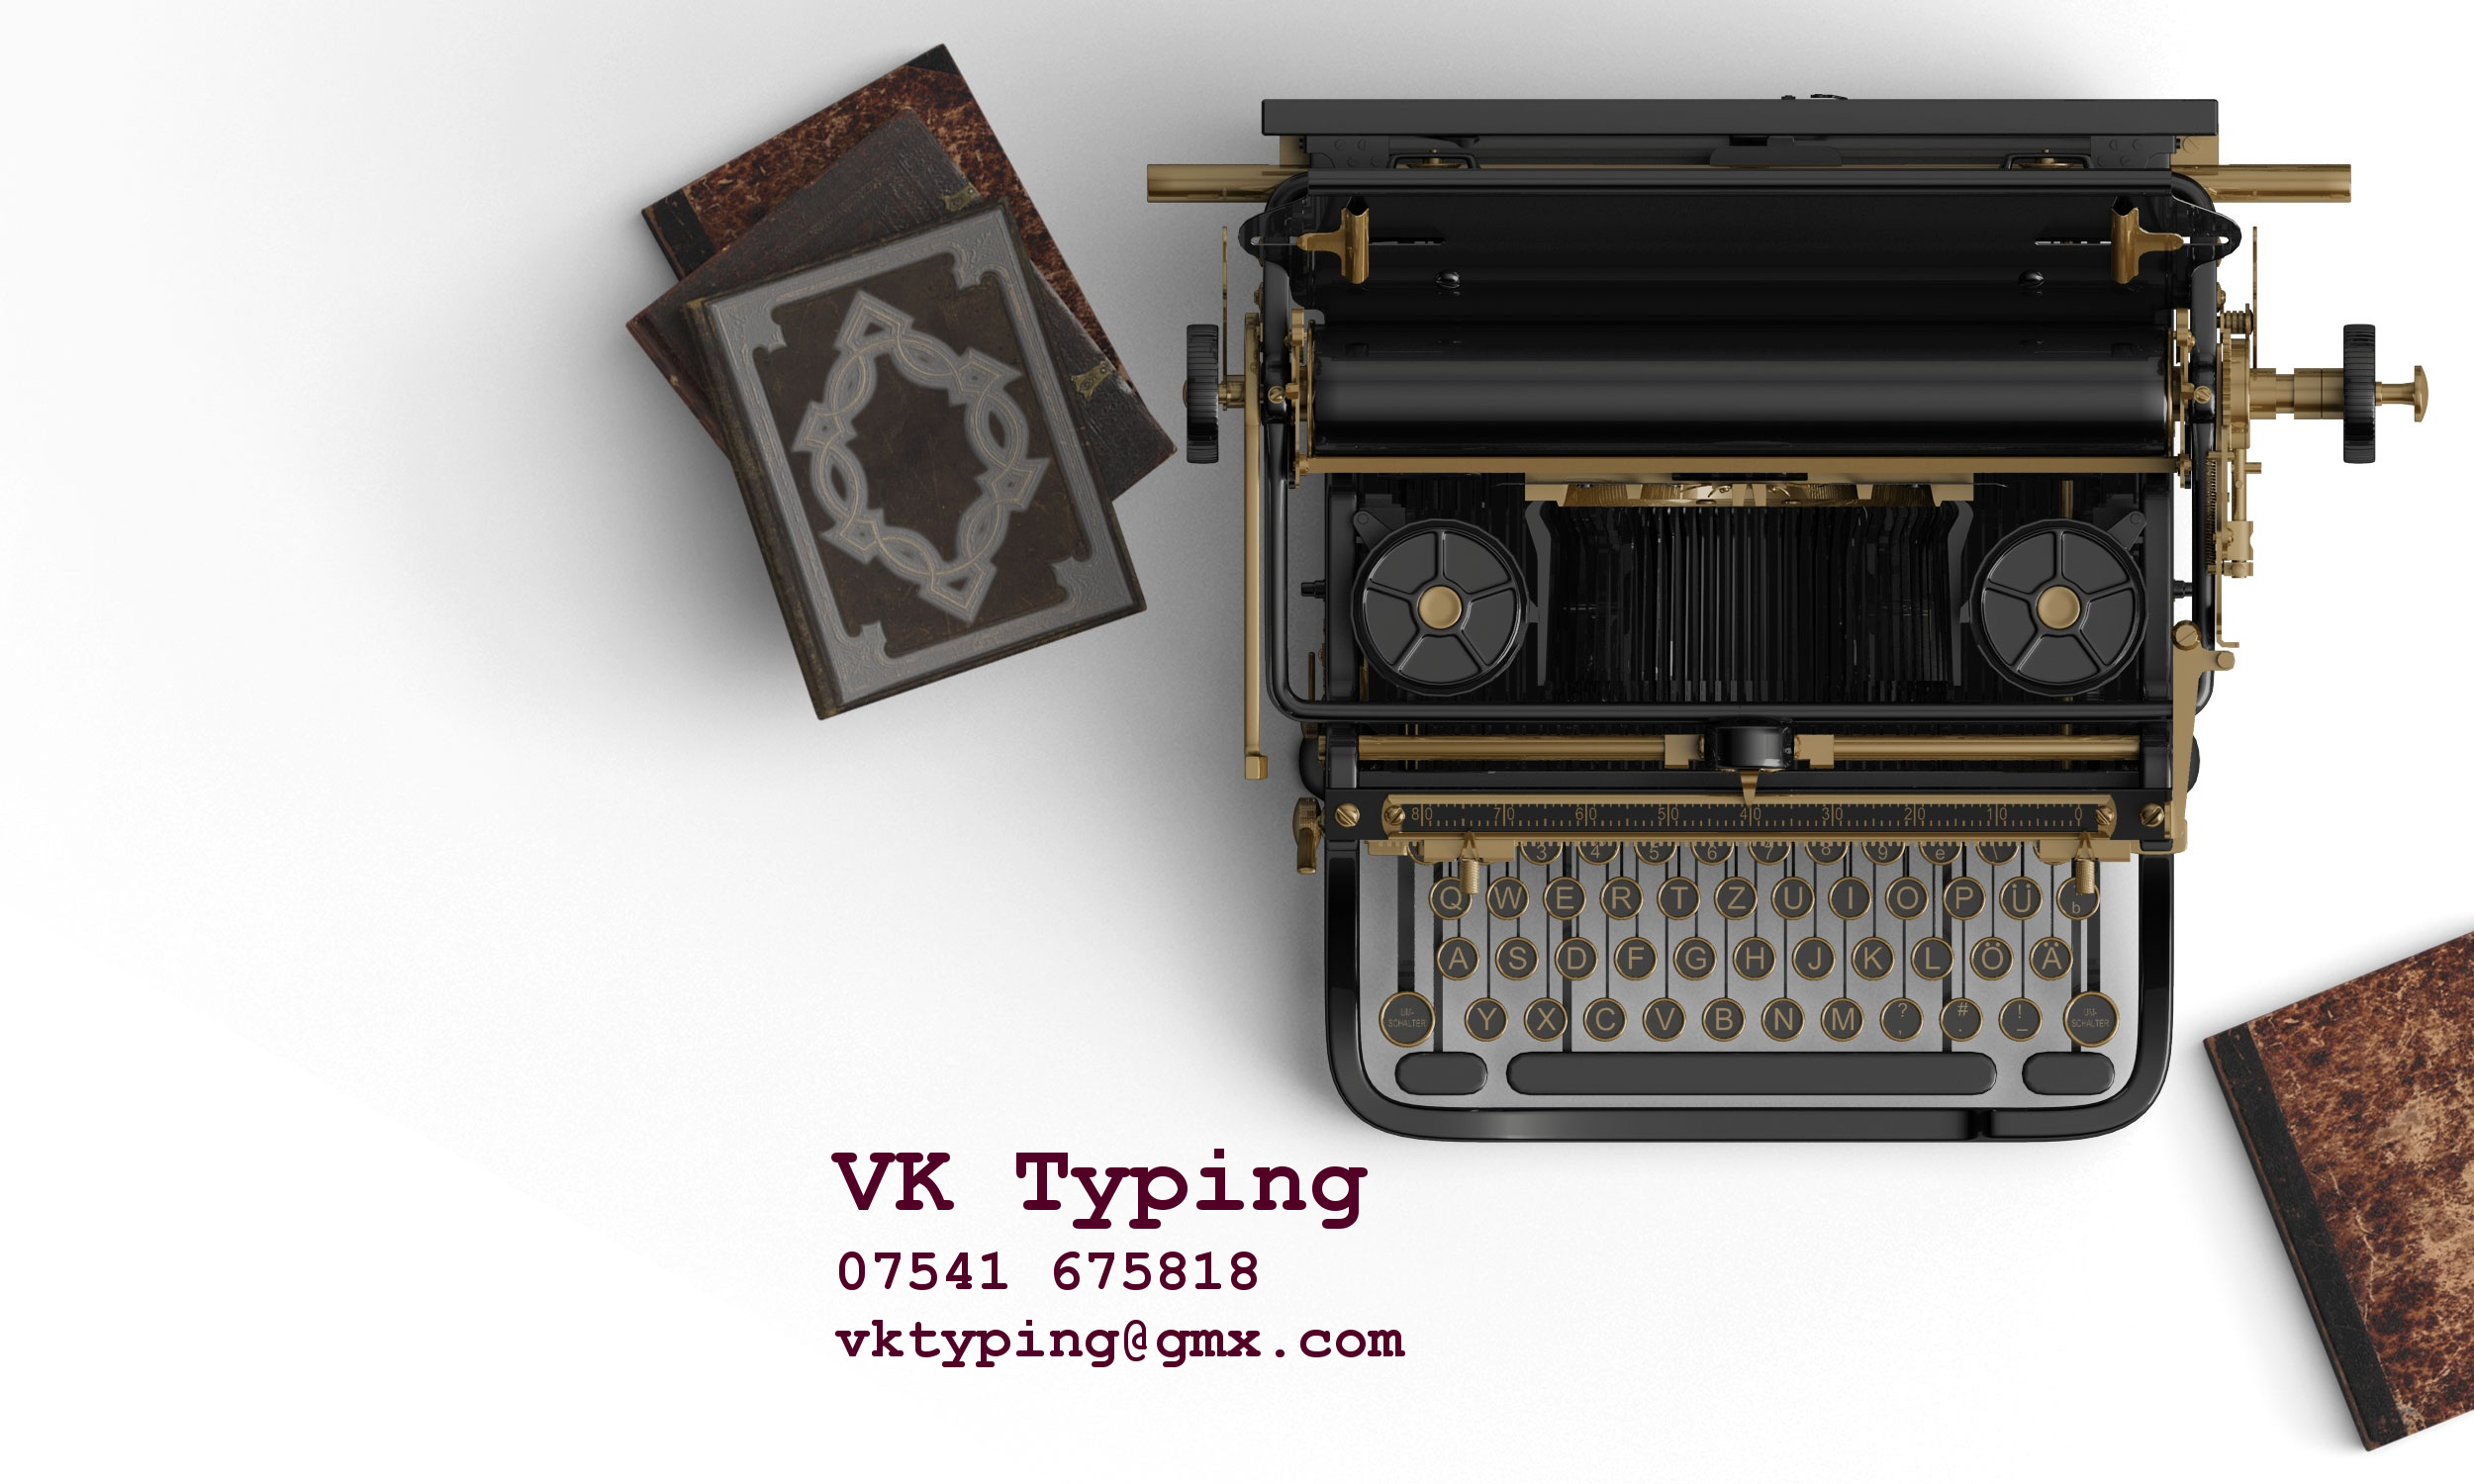 VK Typing in Norwich: address, telephone number and opening